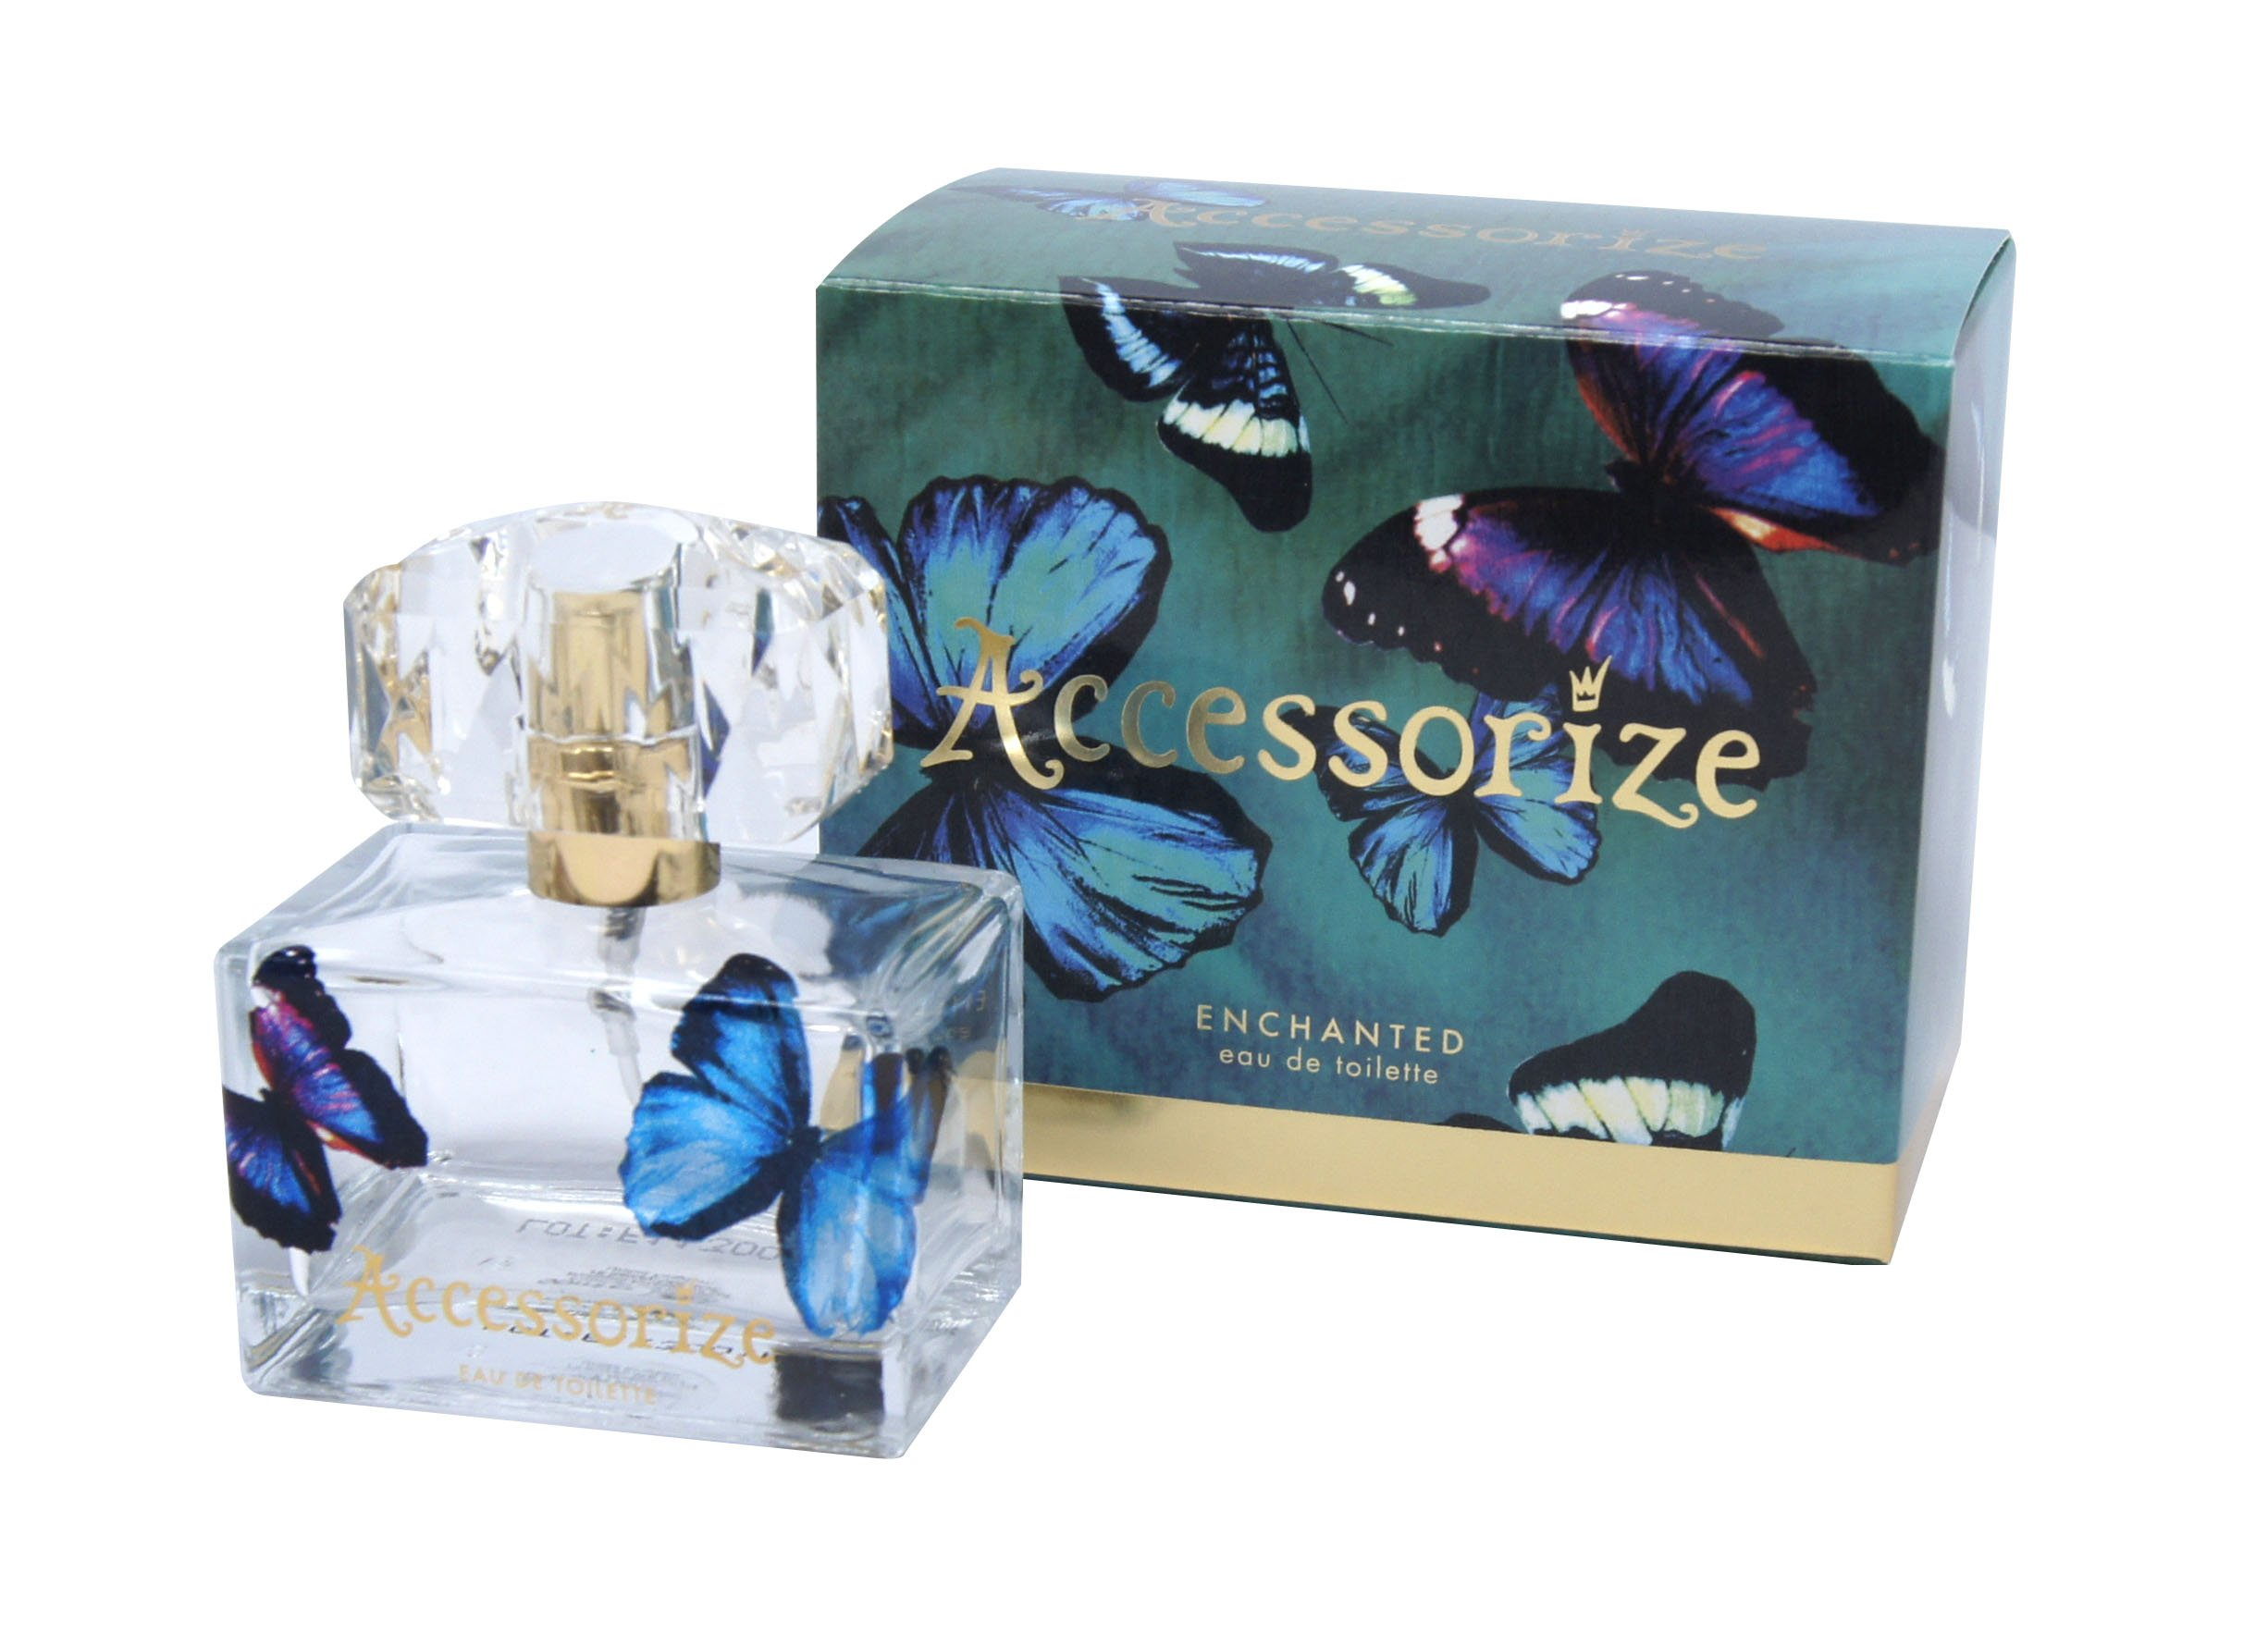 Accessorize Fragrance Enchanted 50ml by Accessorize (Image #1)